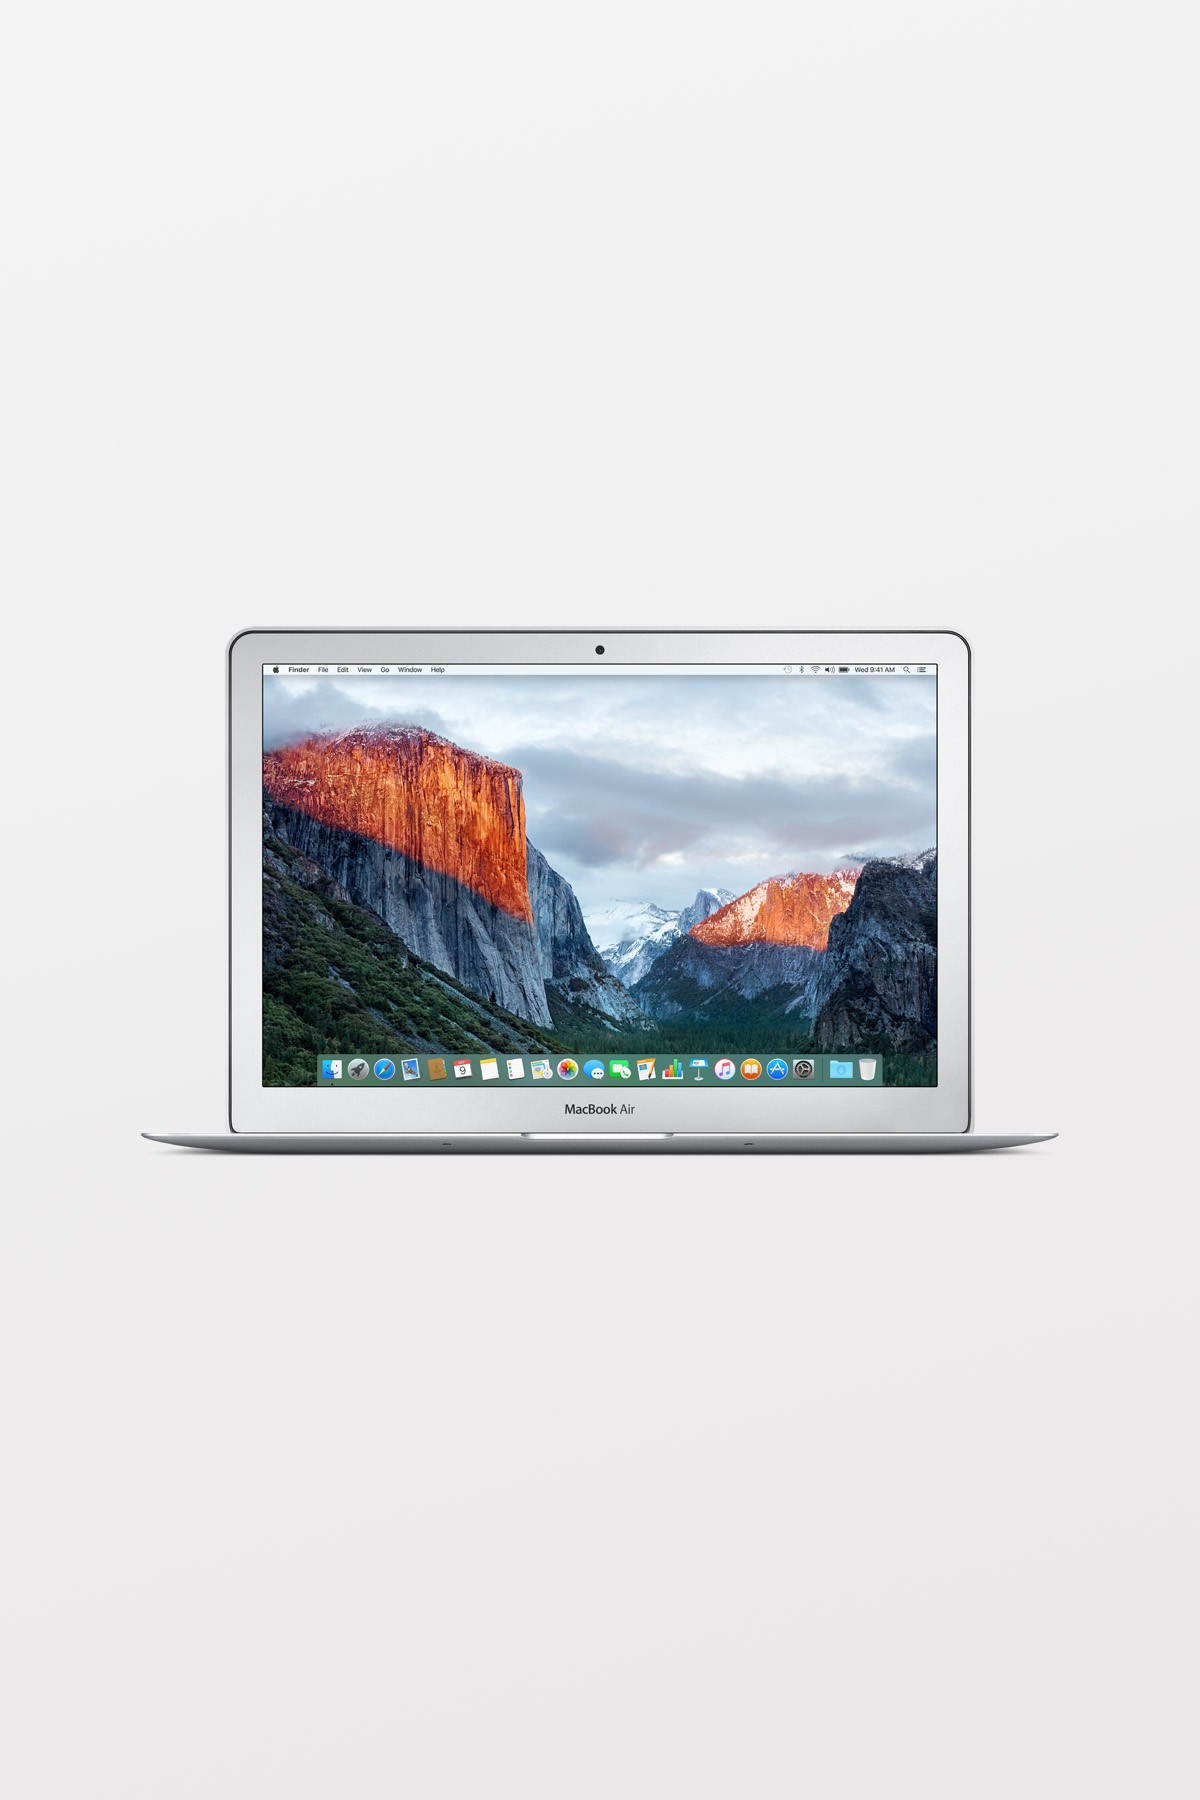 Apple MacBook Air 13-inch (2.2GHz i7/8GB/128GB Flash/Intel HD Graphics 6000) - Apple Certified Refurbished